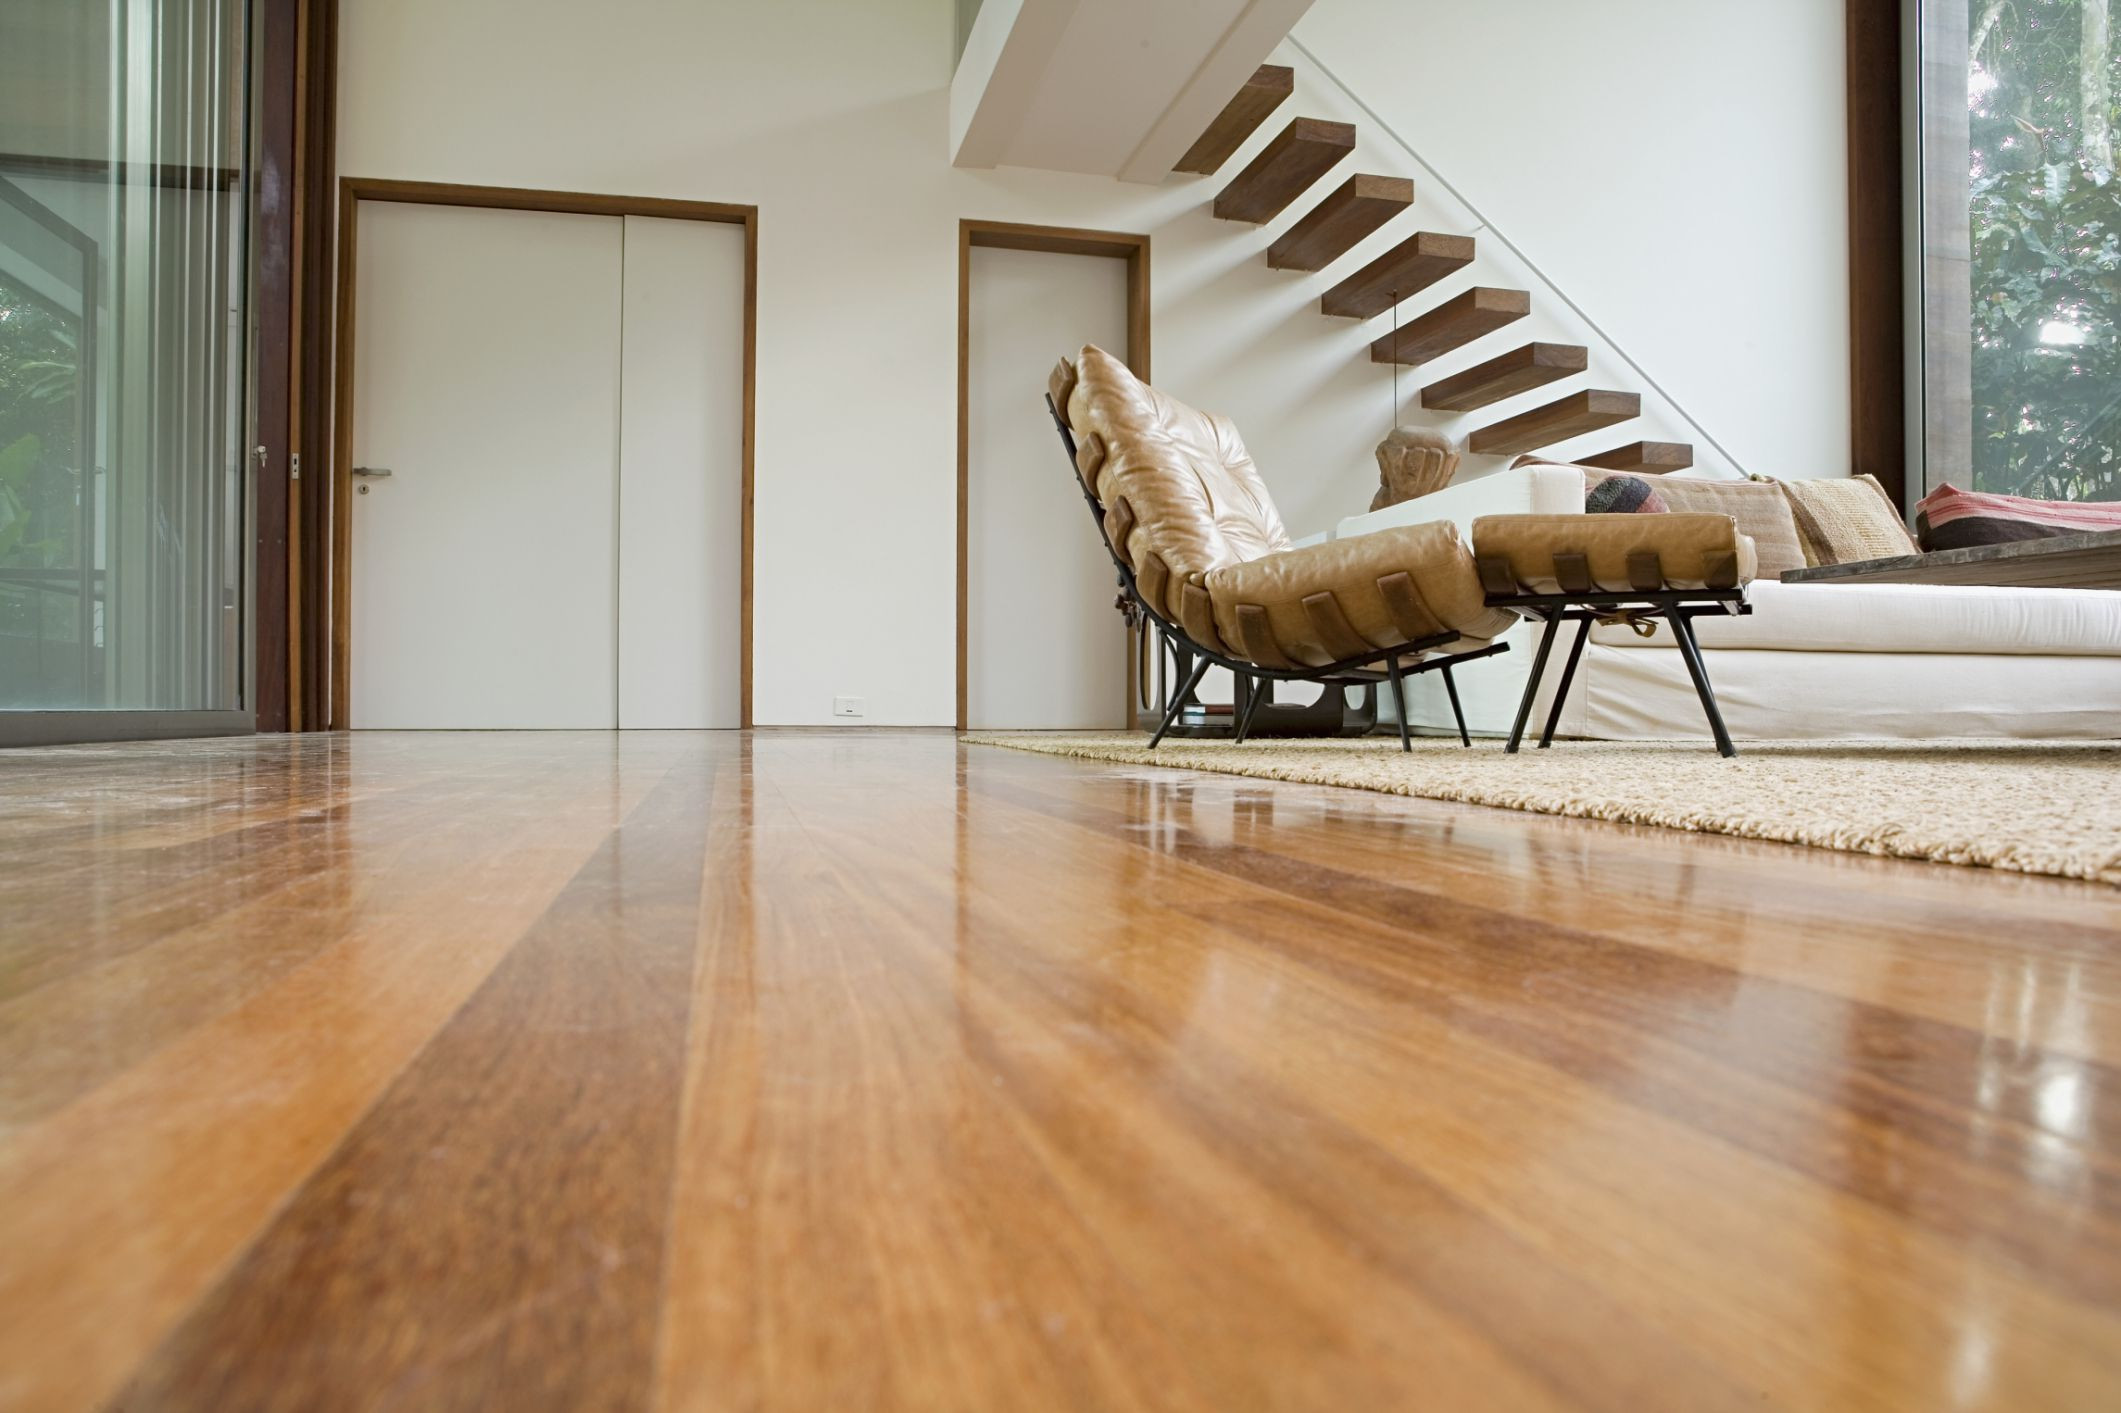 engineered hardwood flooring vs hardwood cost of engineered wood flooring vs solid wood flooring with 200571260 001 highres 56a49dec5f9b58b7d0d7dc1e